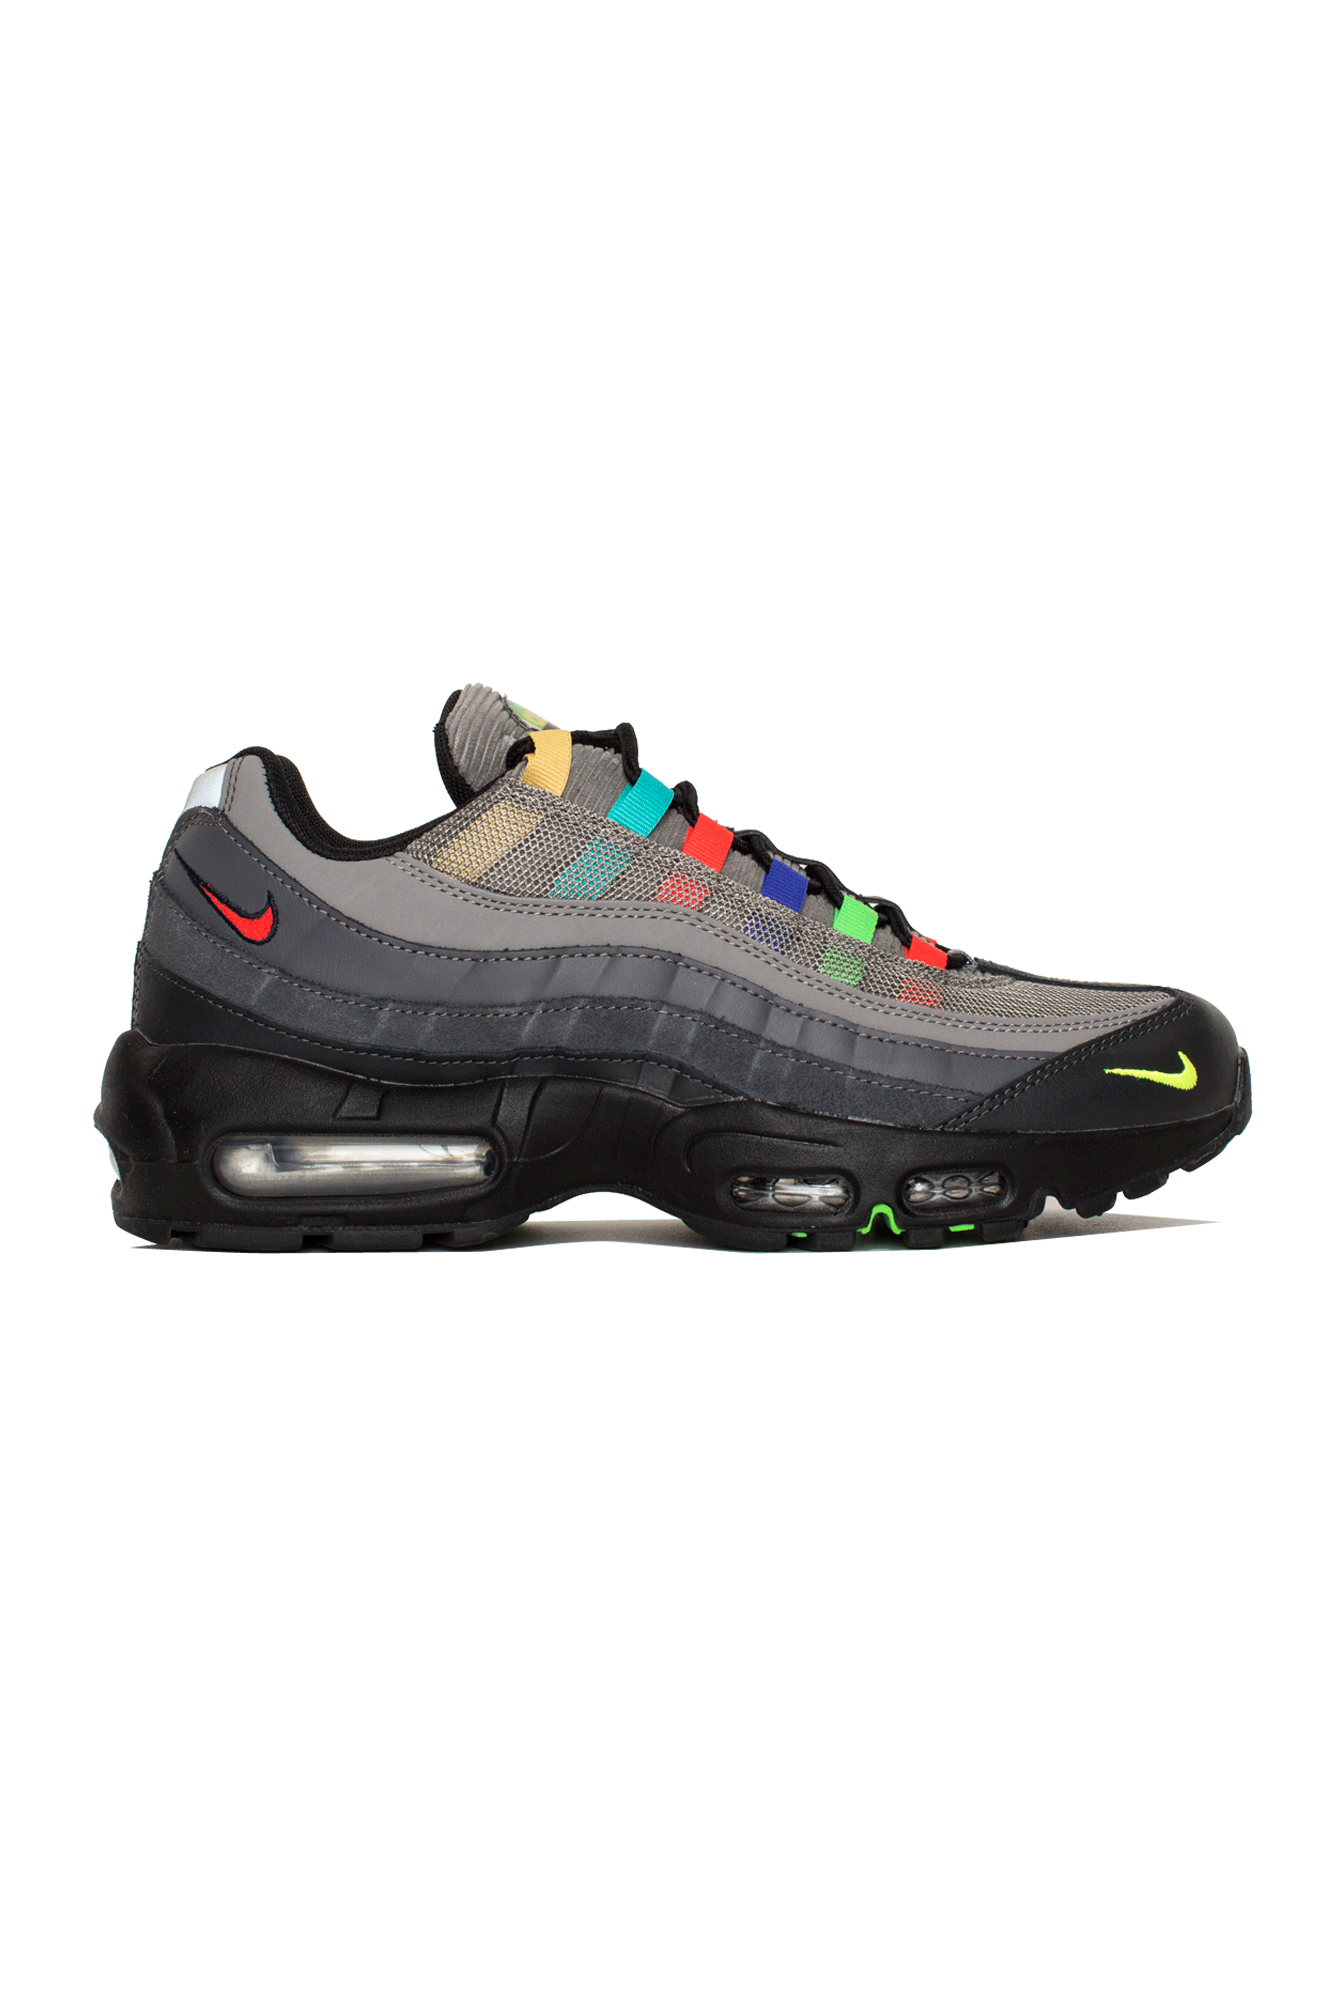 Nike Sneakers Air Max 95 SE Grigio CW6575-#000#001#7 - One Block Down